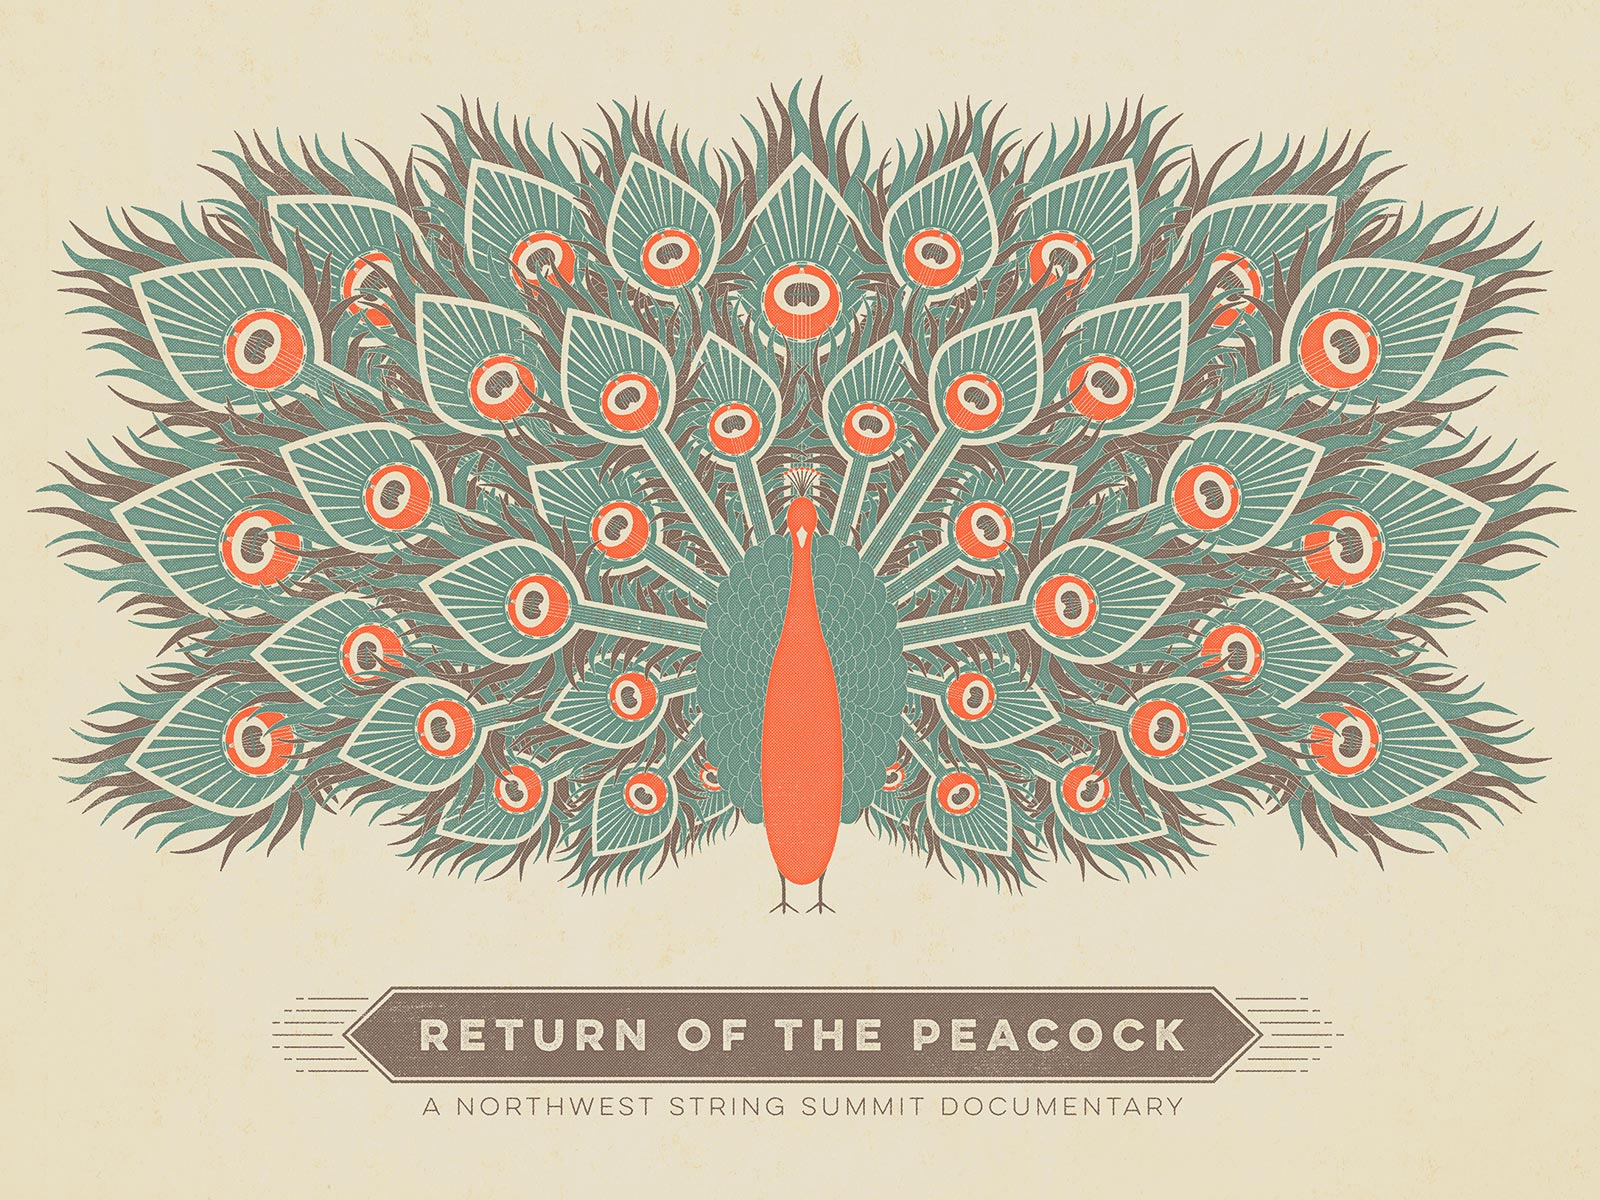 Return of the Peacock